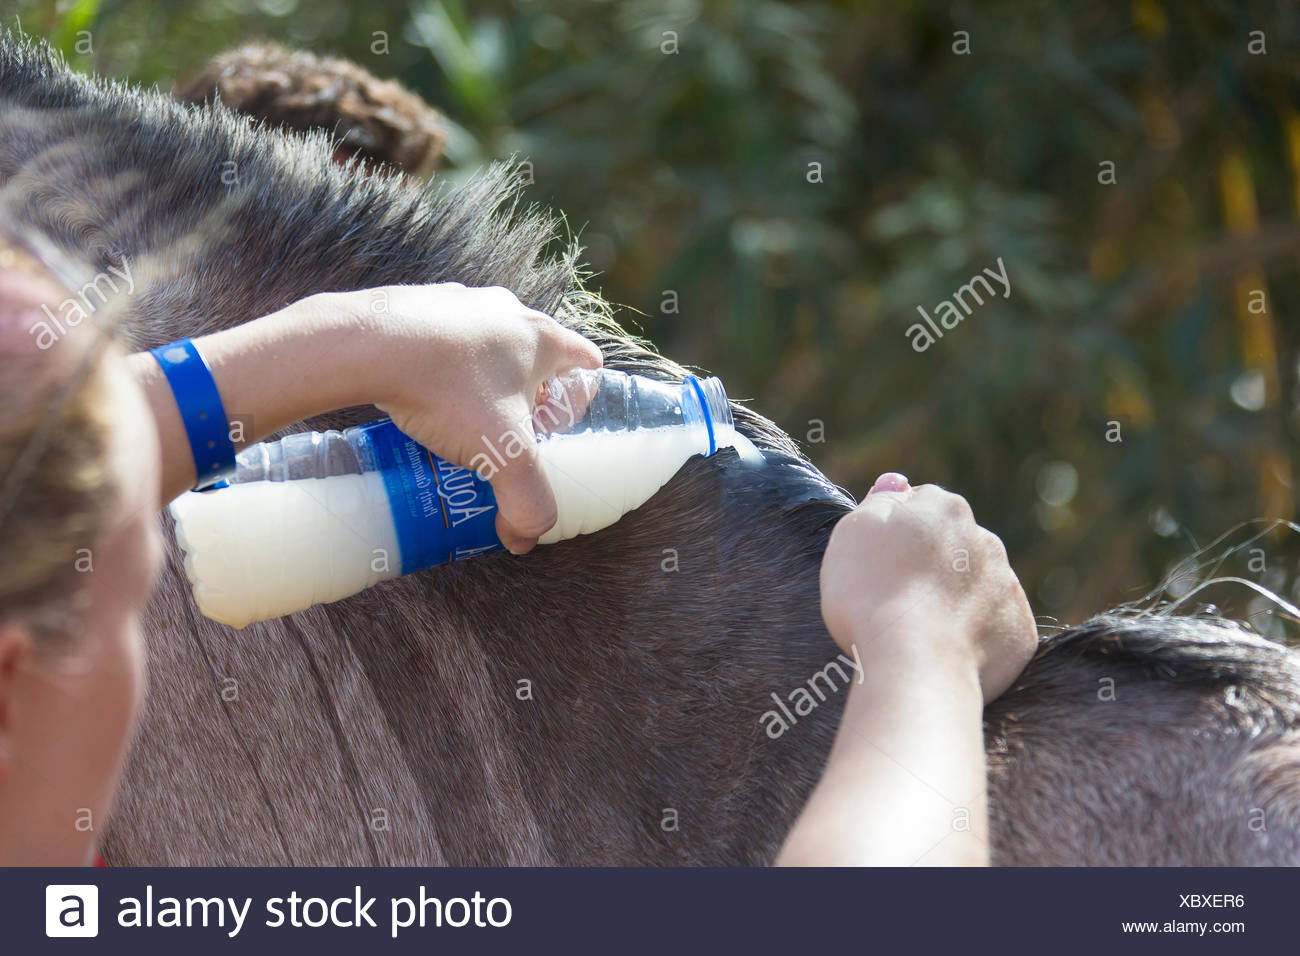 Sweet Itch Horse Stock Photos & Sweet Itch Horse Stock Images - Alamy